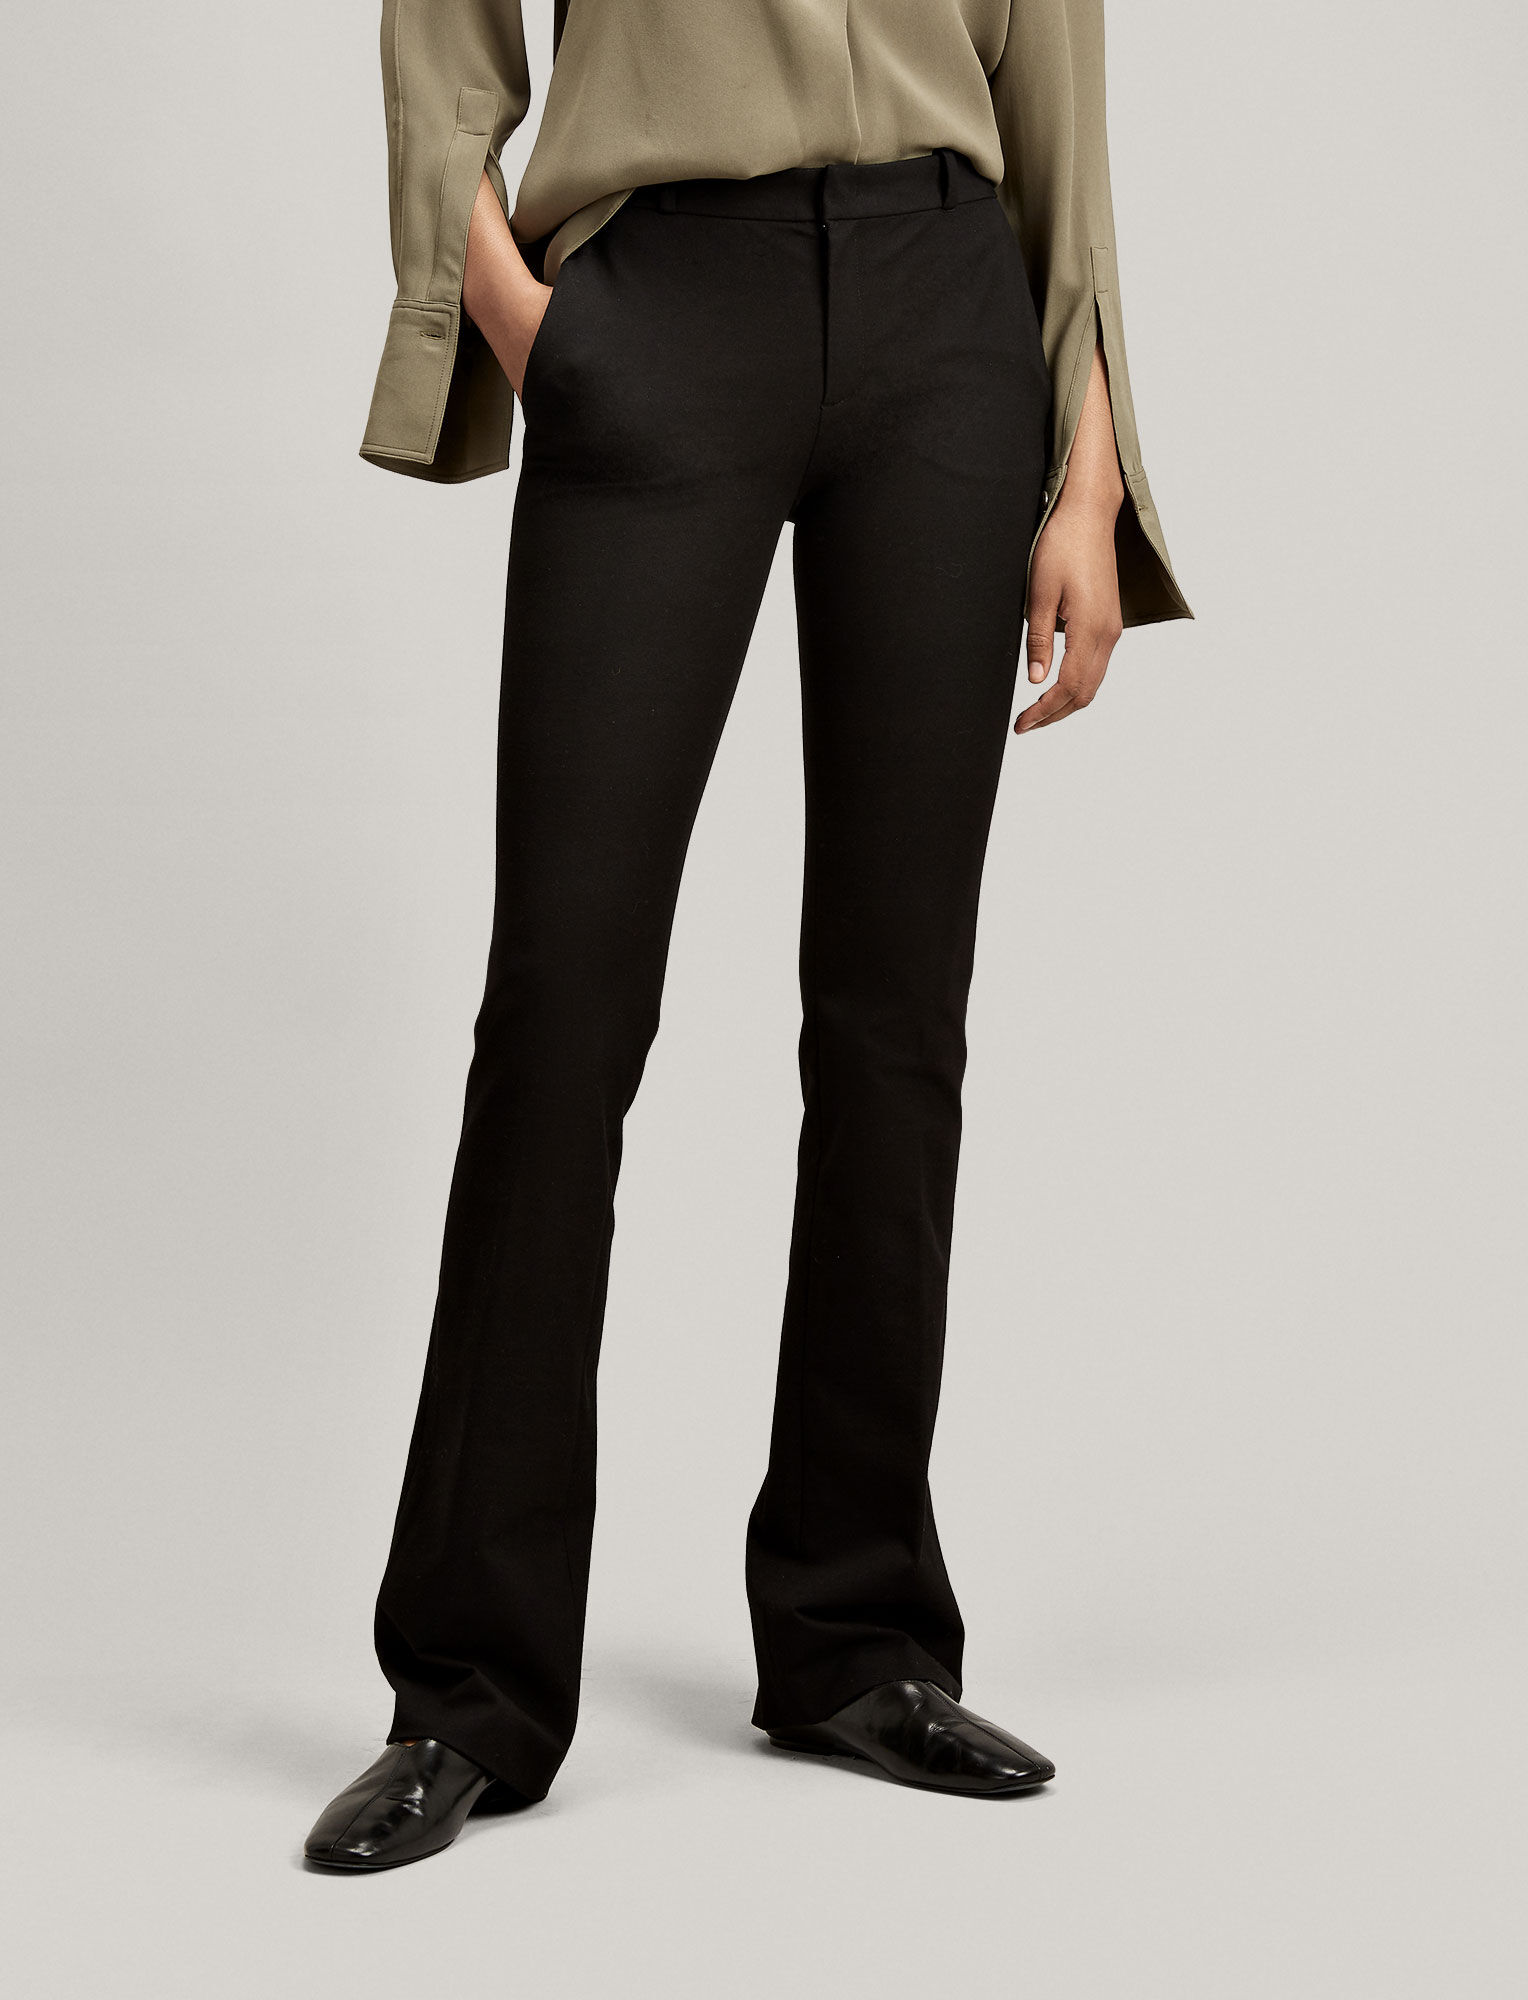 Joseph, Gabardine Stretch New Rocket Trouser, in BLACK